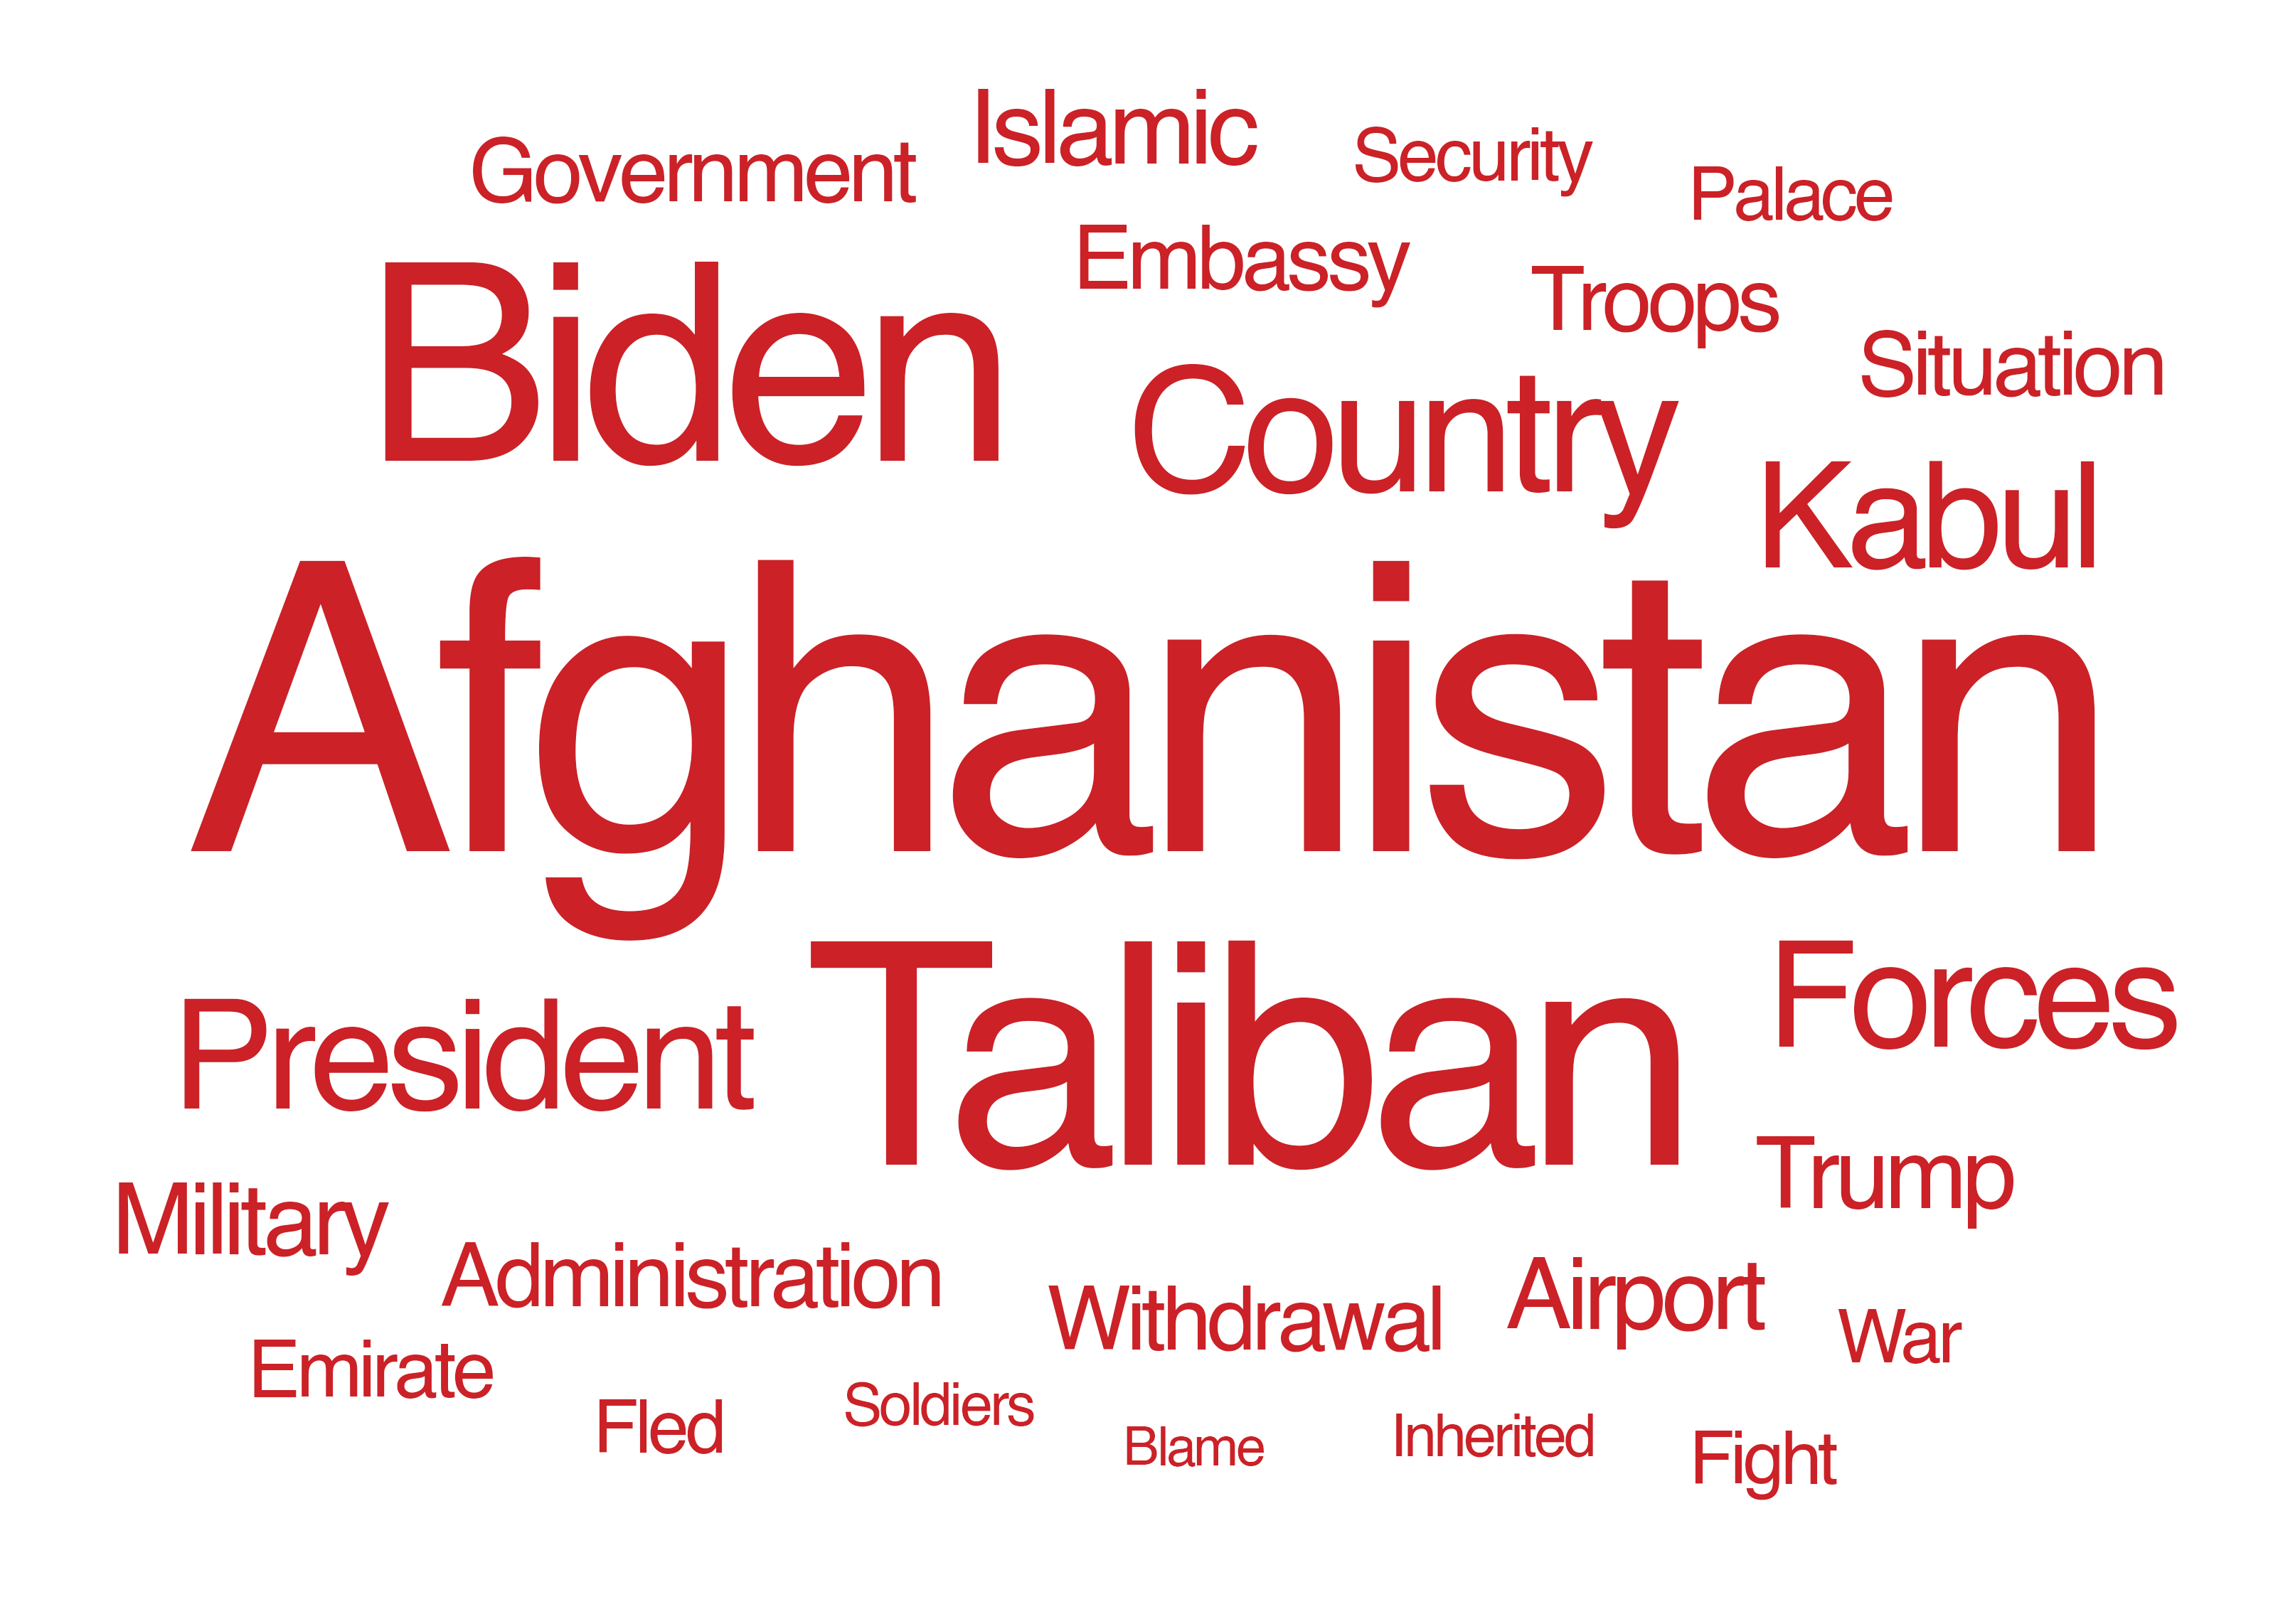 Right word cloud